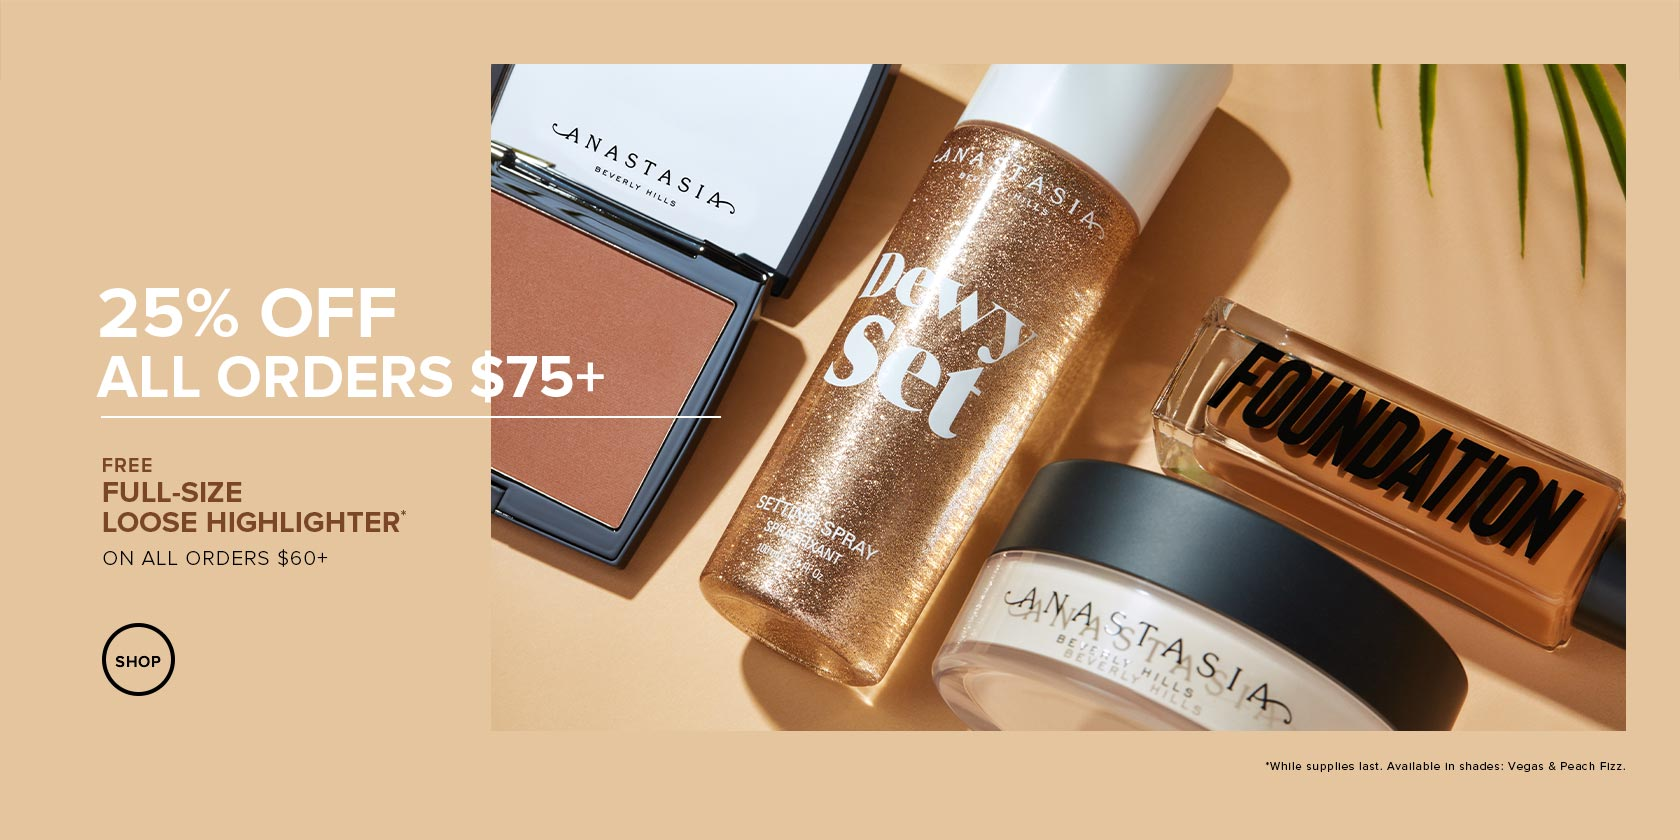 25% off $75 + Free Loose Highlighter